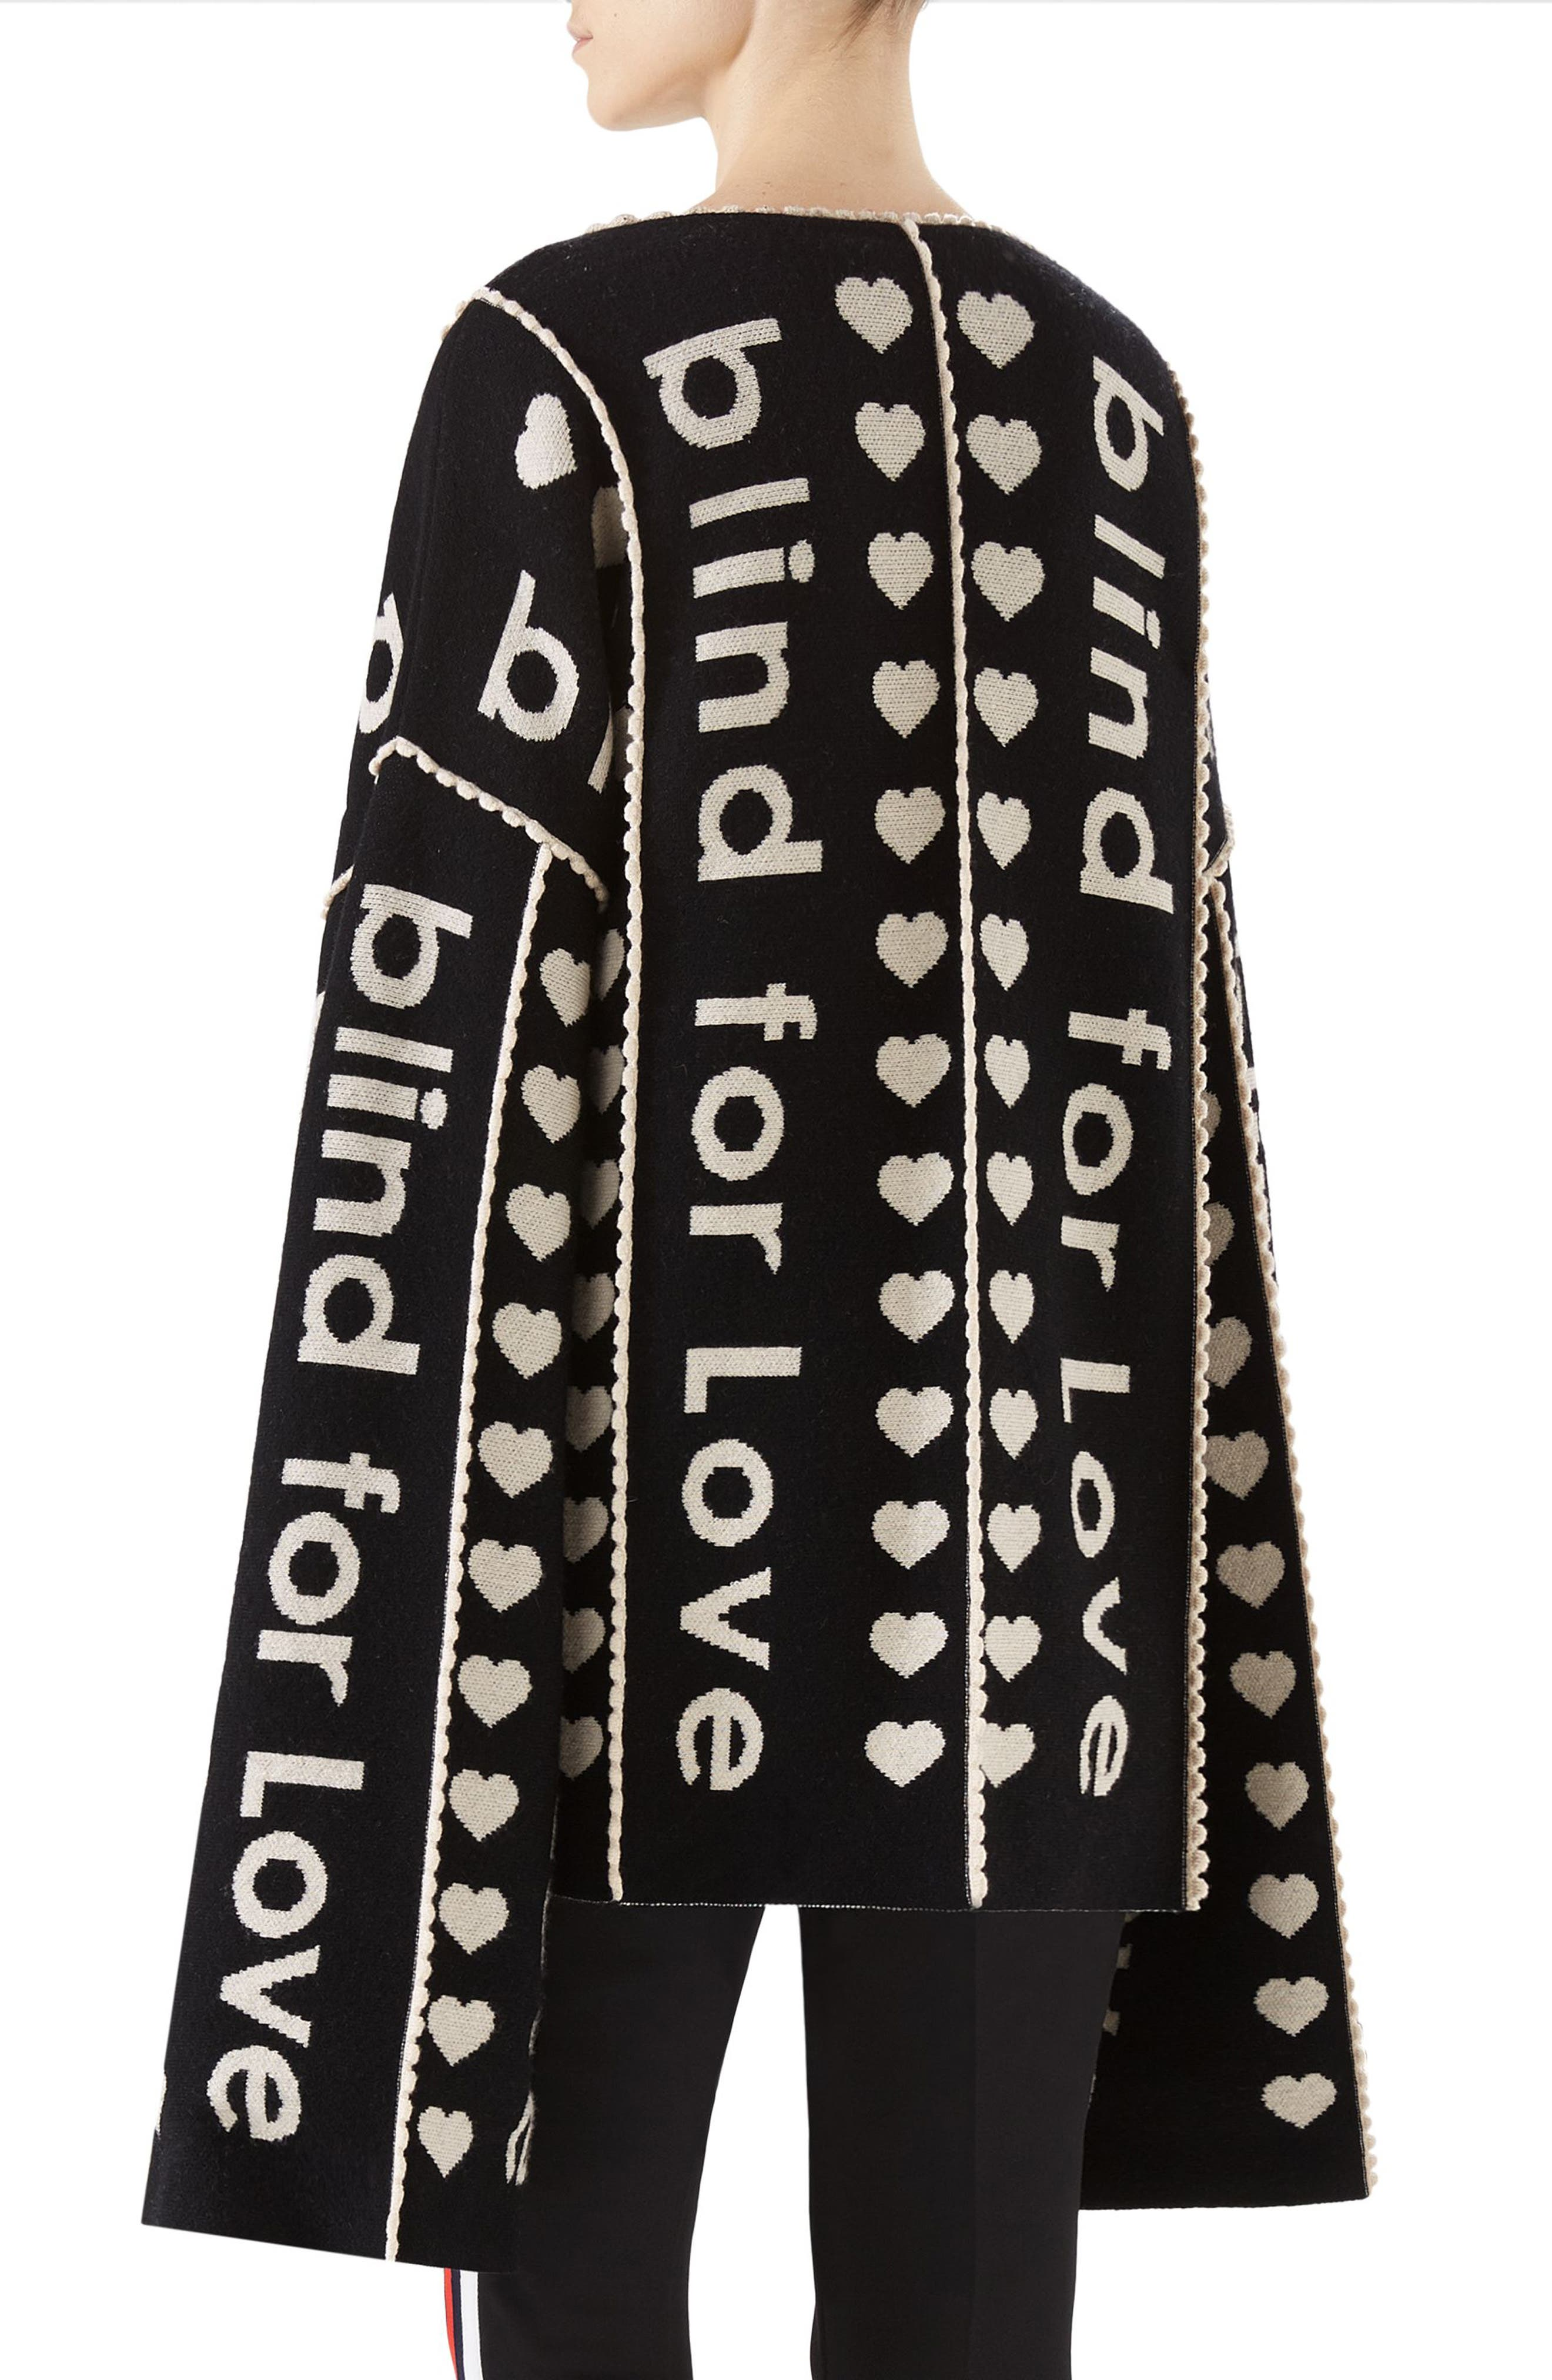 Blind for Love Jacquard Sweater Coat,                             Alternate thumbnail 2, color,                             Black